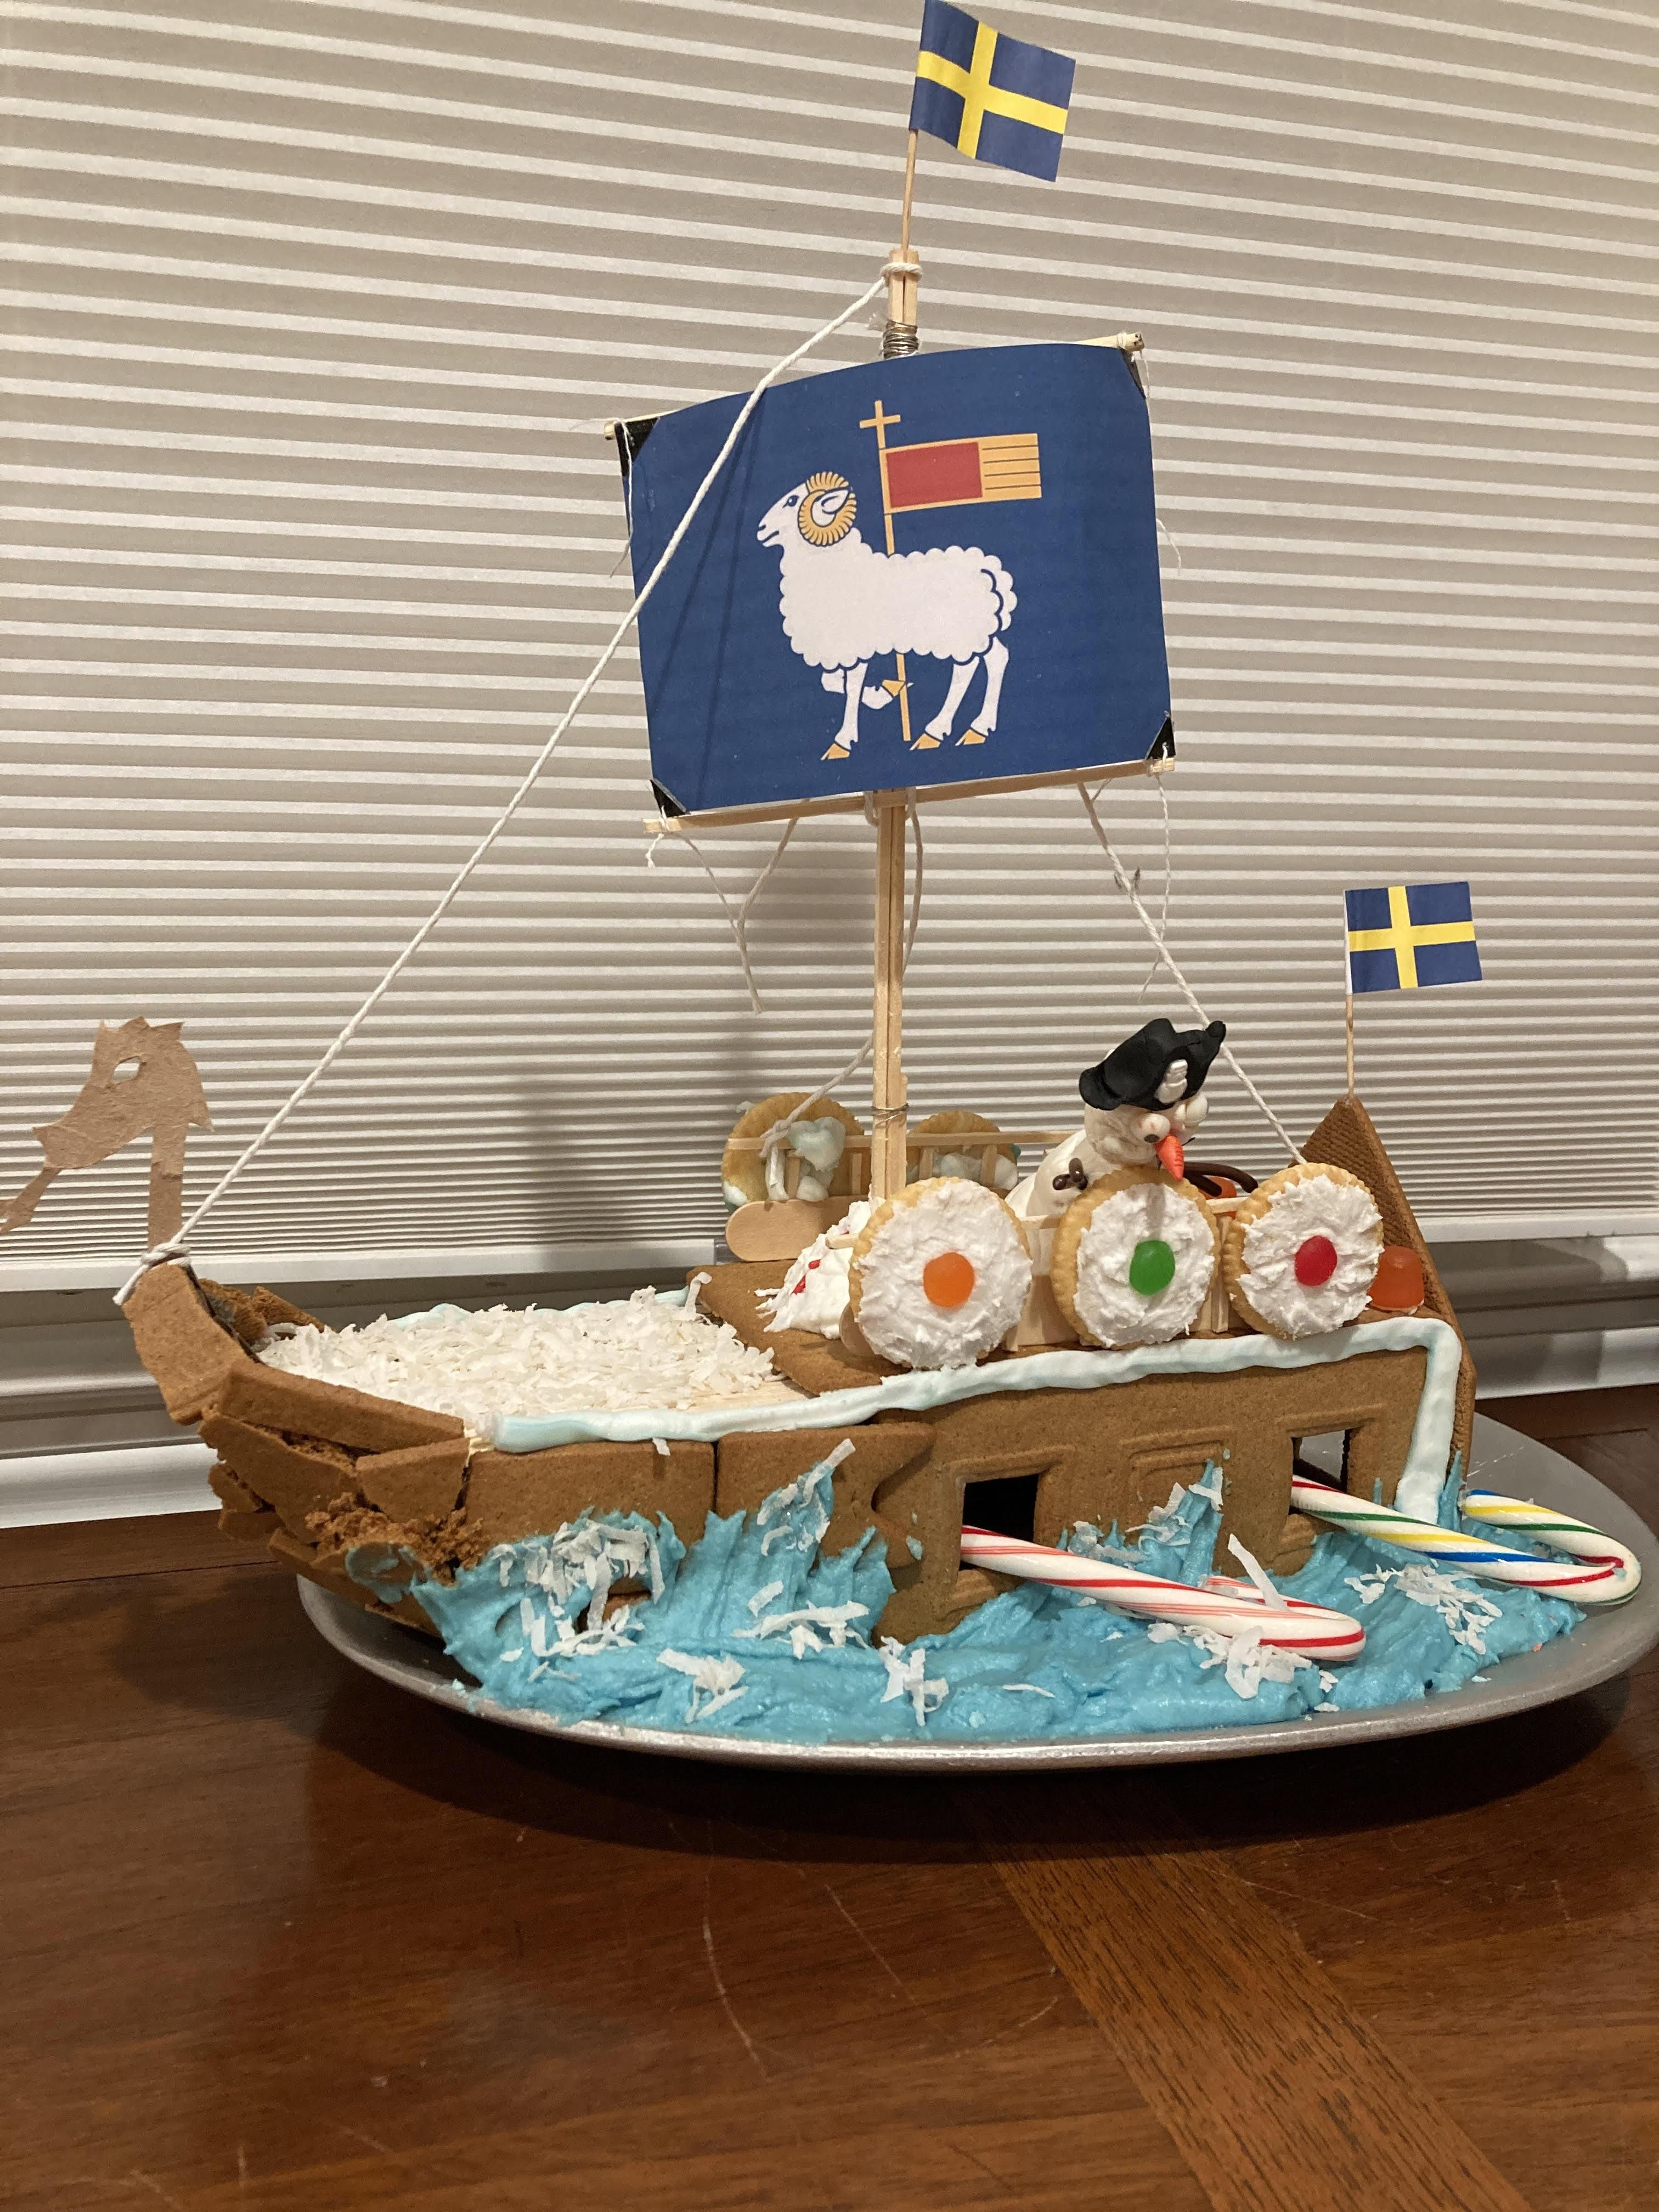 My son and his friend designed our submission for the extended family gingerbread house contest